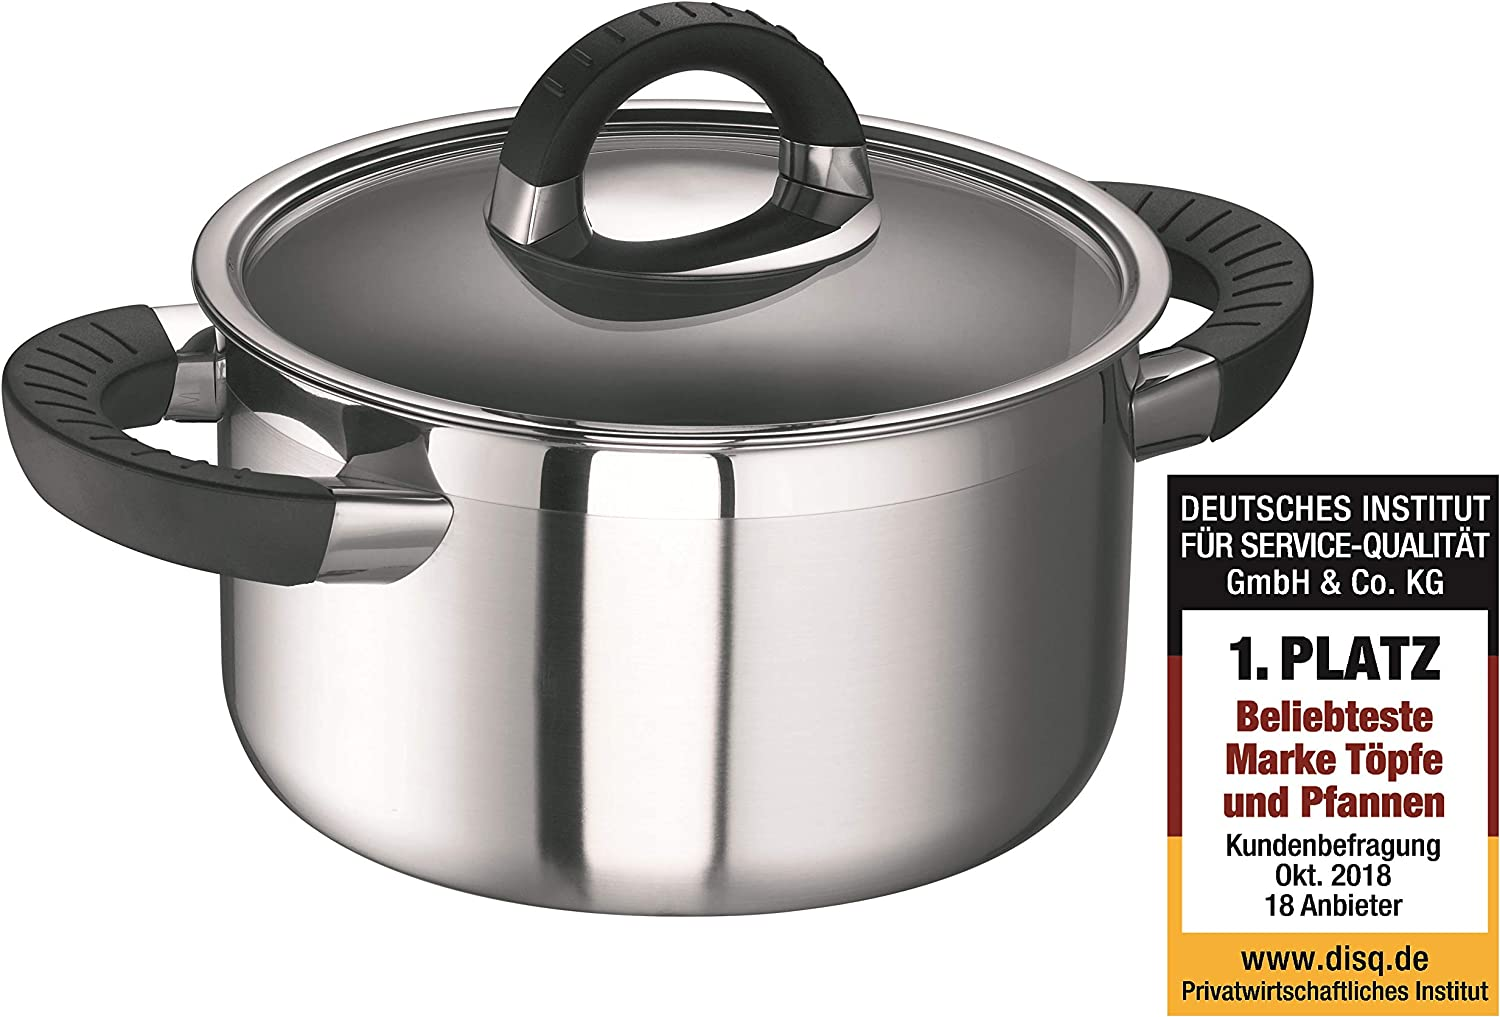 Schulte-Ufer Meat Pot Black Betty i, Stew Pot, Slow Cooker, Stainless Steel 18/10, 24 cm, 5.5 L, 6516-24 i